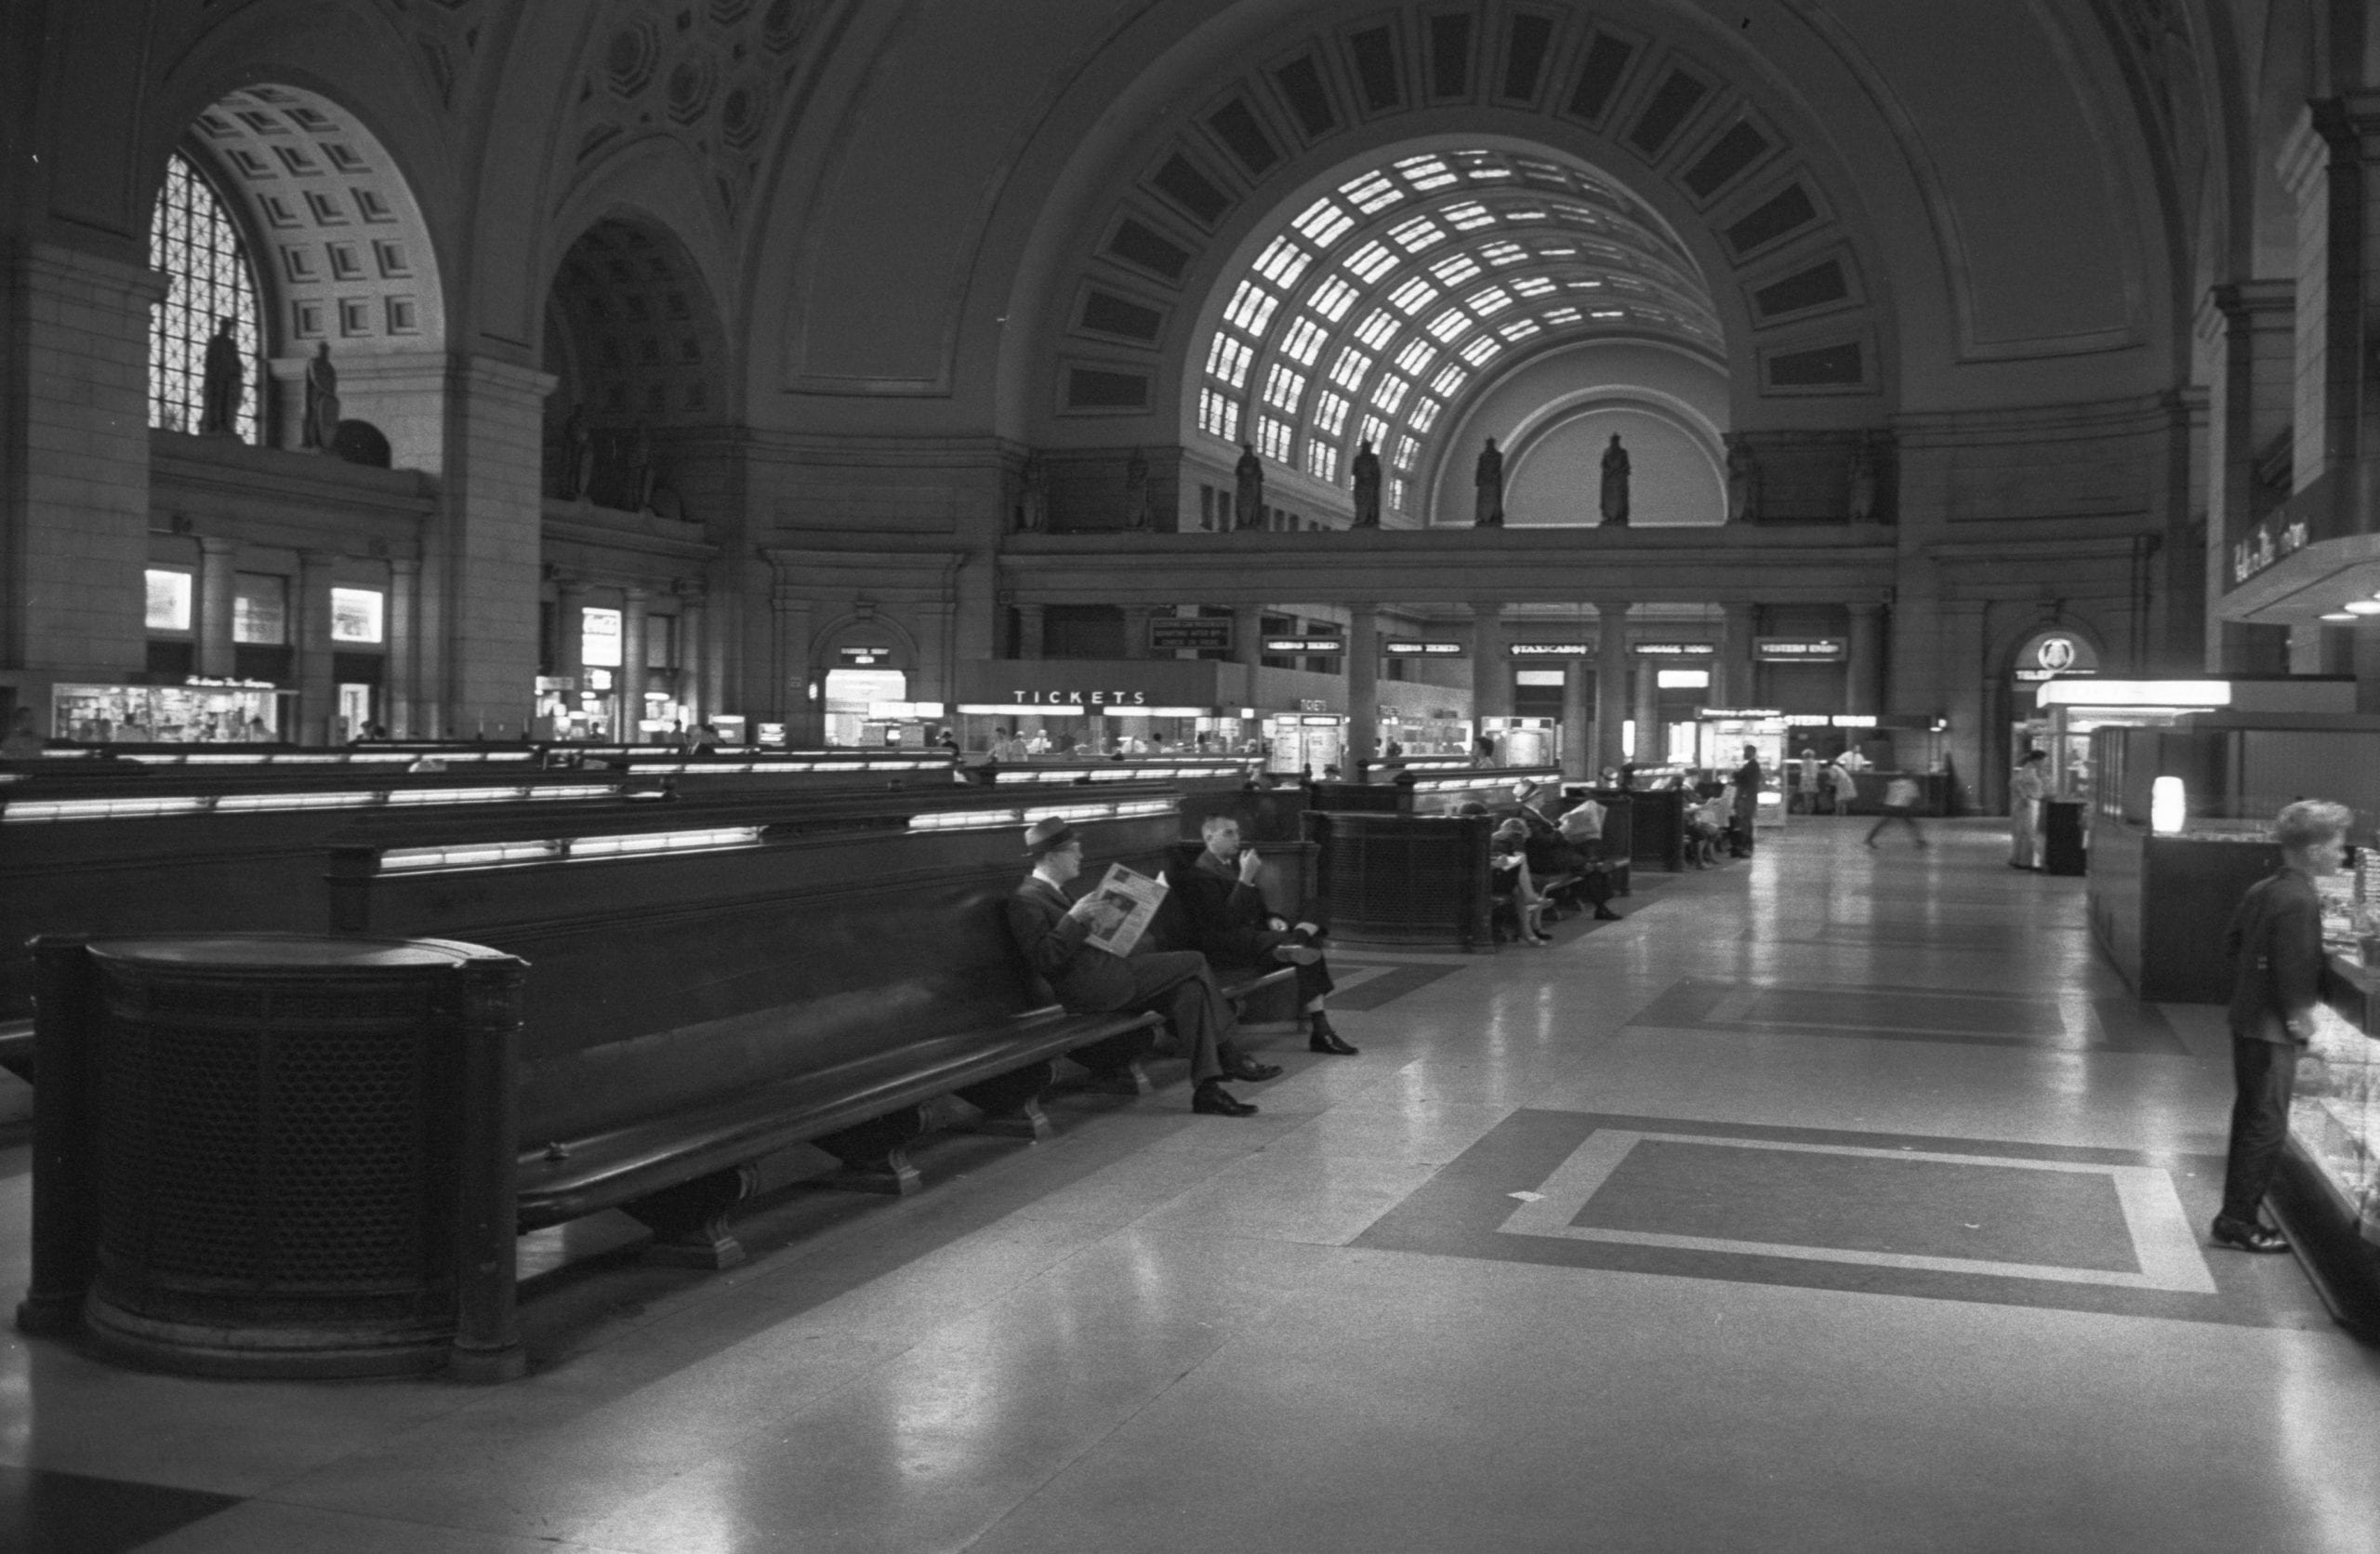 Passengers seated in long benches in the waiting room of Union Station, Washington, D.C.